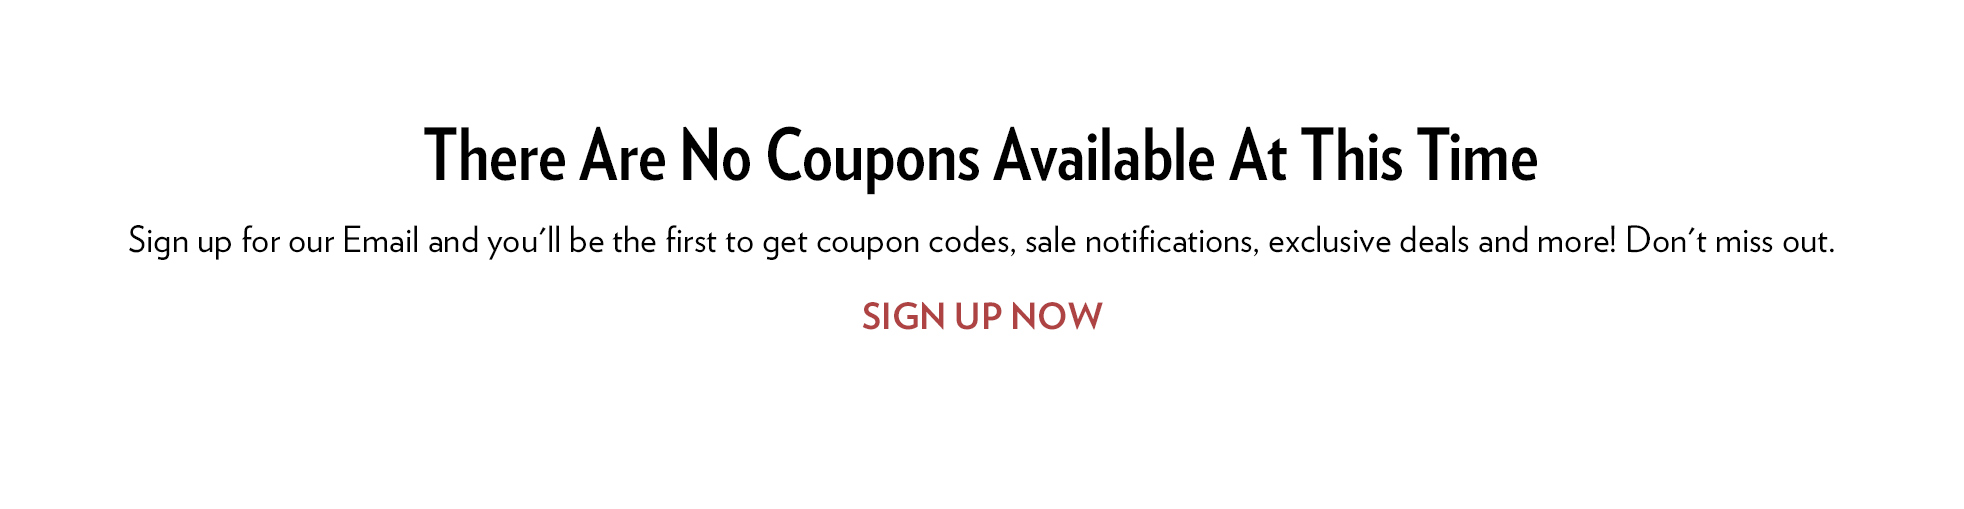 There are no 6pm Coupons currently available. Click here to sign up for our Email and you'll be the first to get coupon codes, sale notifications, exclusive deals and more! Don't miss out. SIGN UP NOW